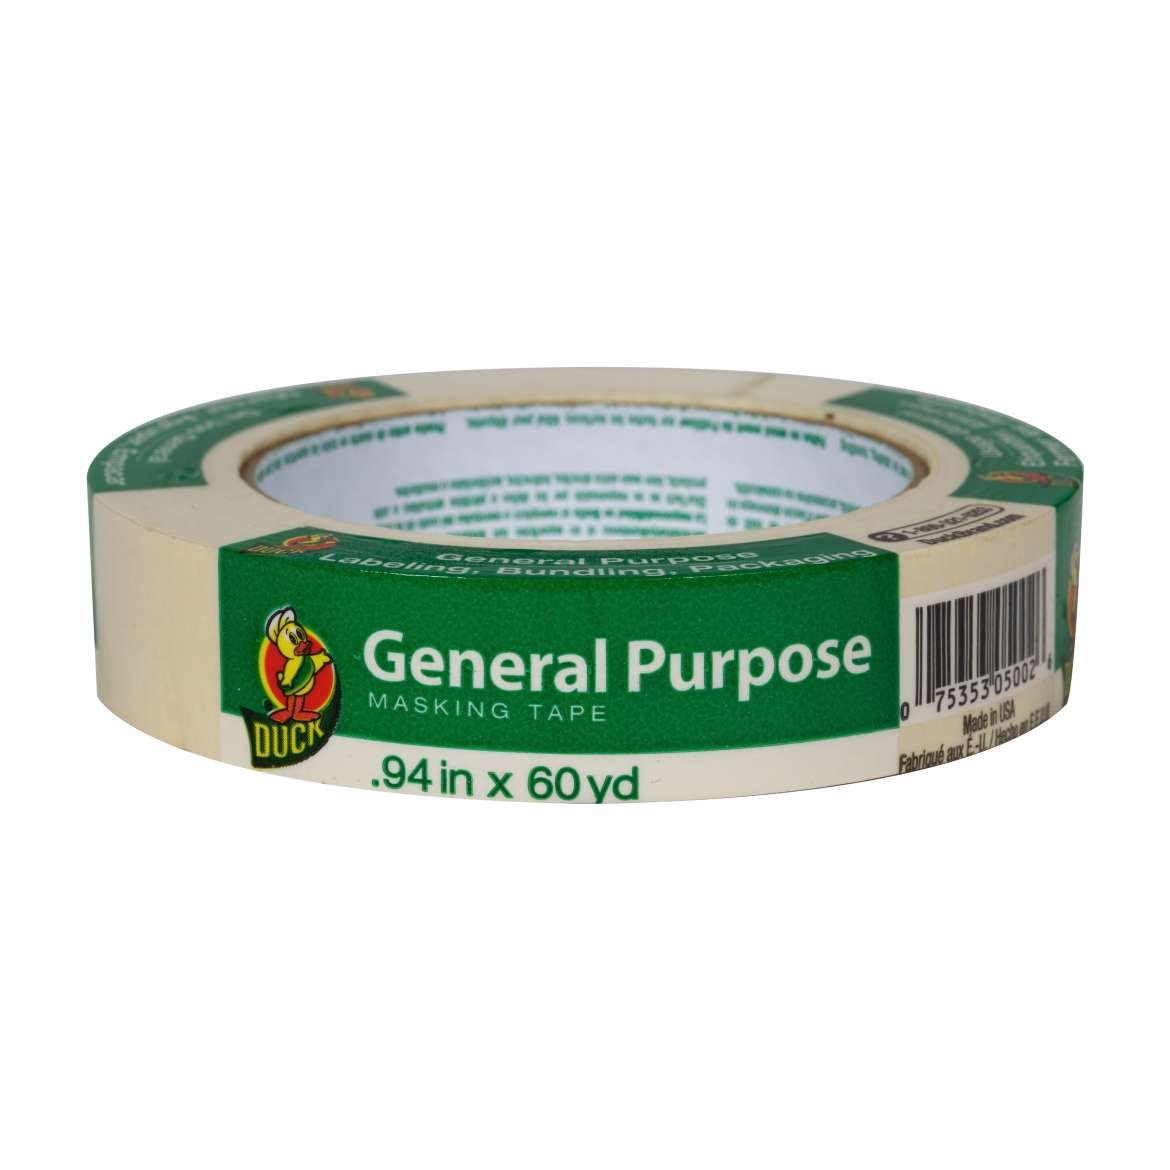 Duck® Brand General Purpose Masking Tape - Beige, .94 in. x 60 yd. Image